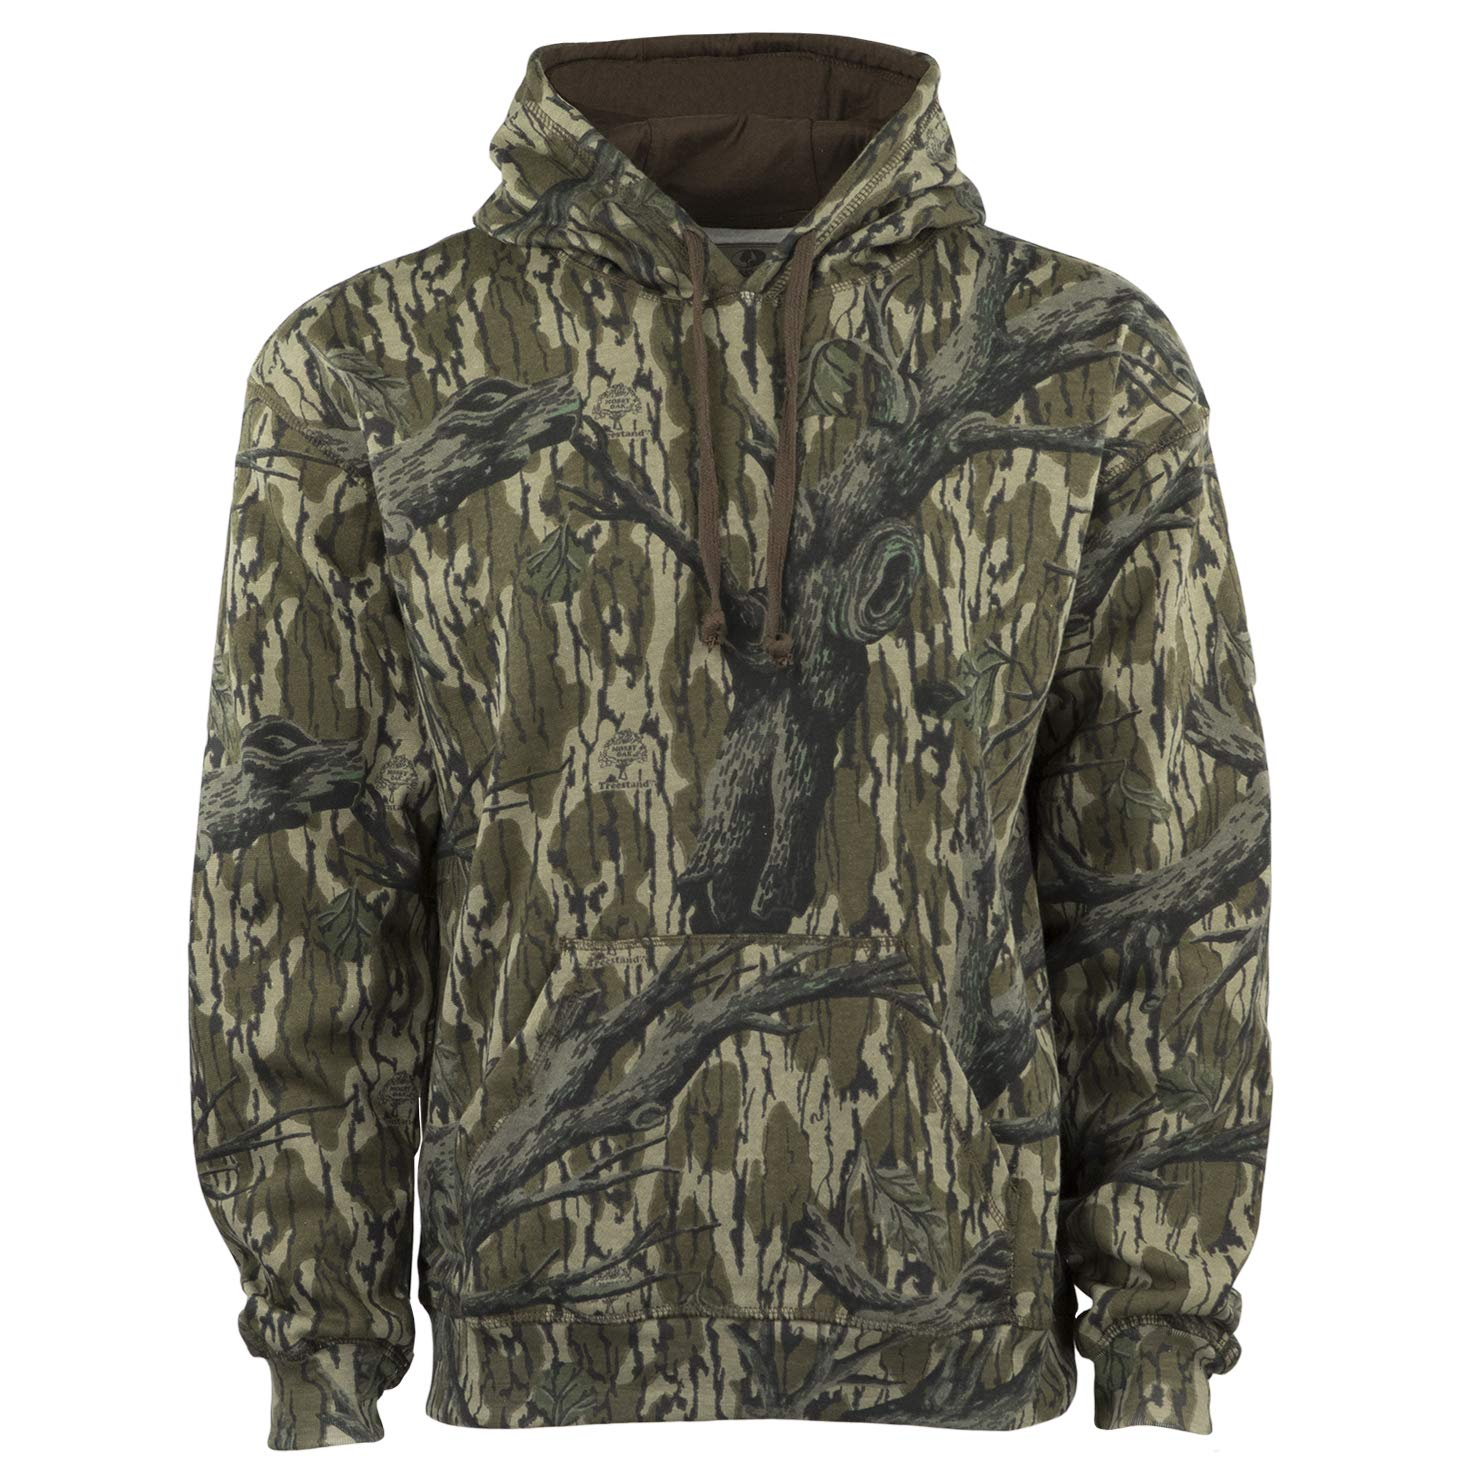 Mossy Oak Men's Vintage Camo Hunt Hoodie, Original Treestand, Large by Mossy Oak